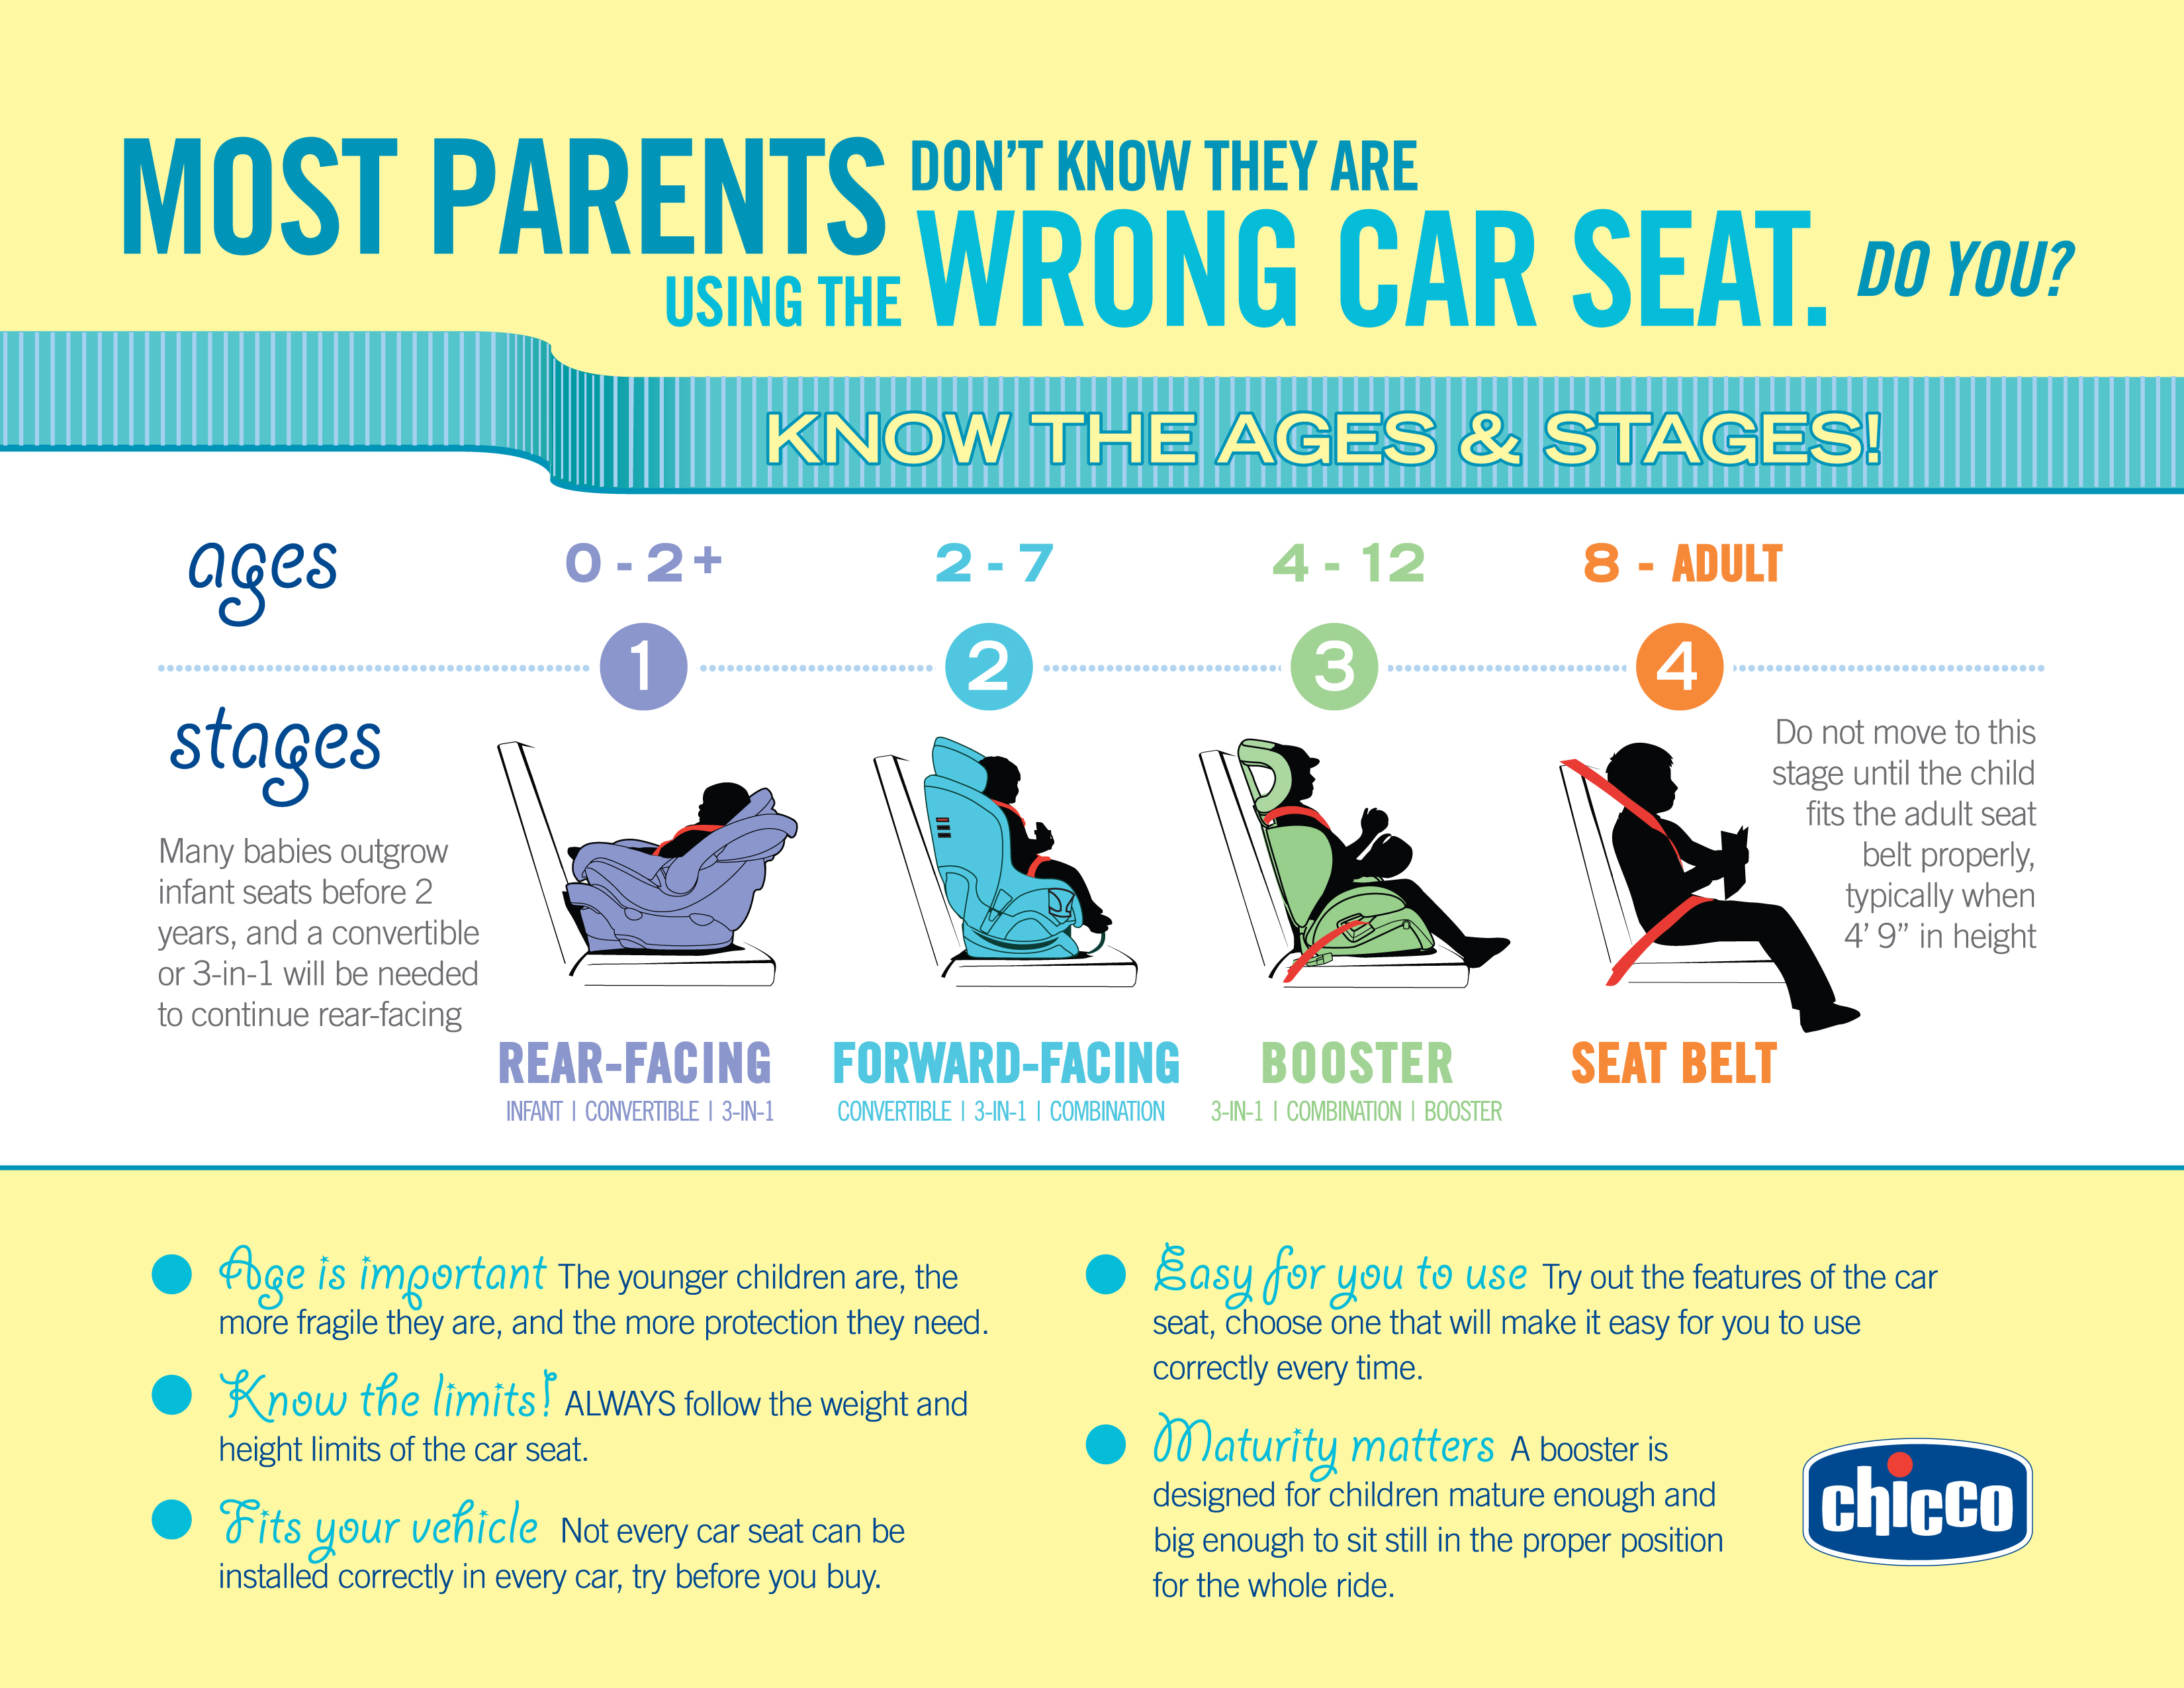 Chicco Introduces A New Car Seat To Their Product Line NextFit